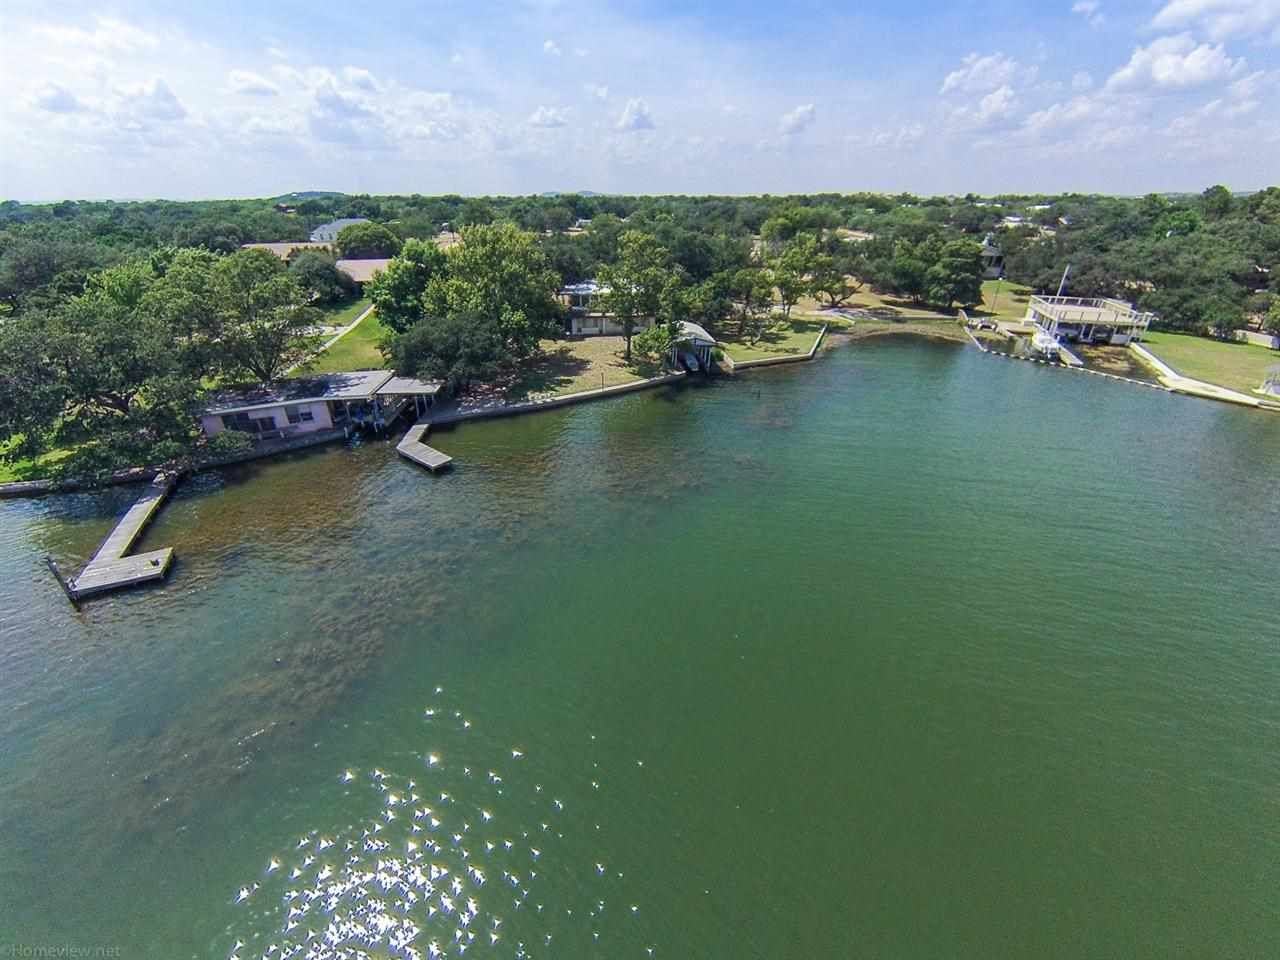 Lake Lbj Real Estate Granite Shoals Highland Haven Shady Acres Horseshoe Bay Kingsland Sunrise Beach Blue Deer Sandy Creek